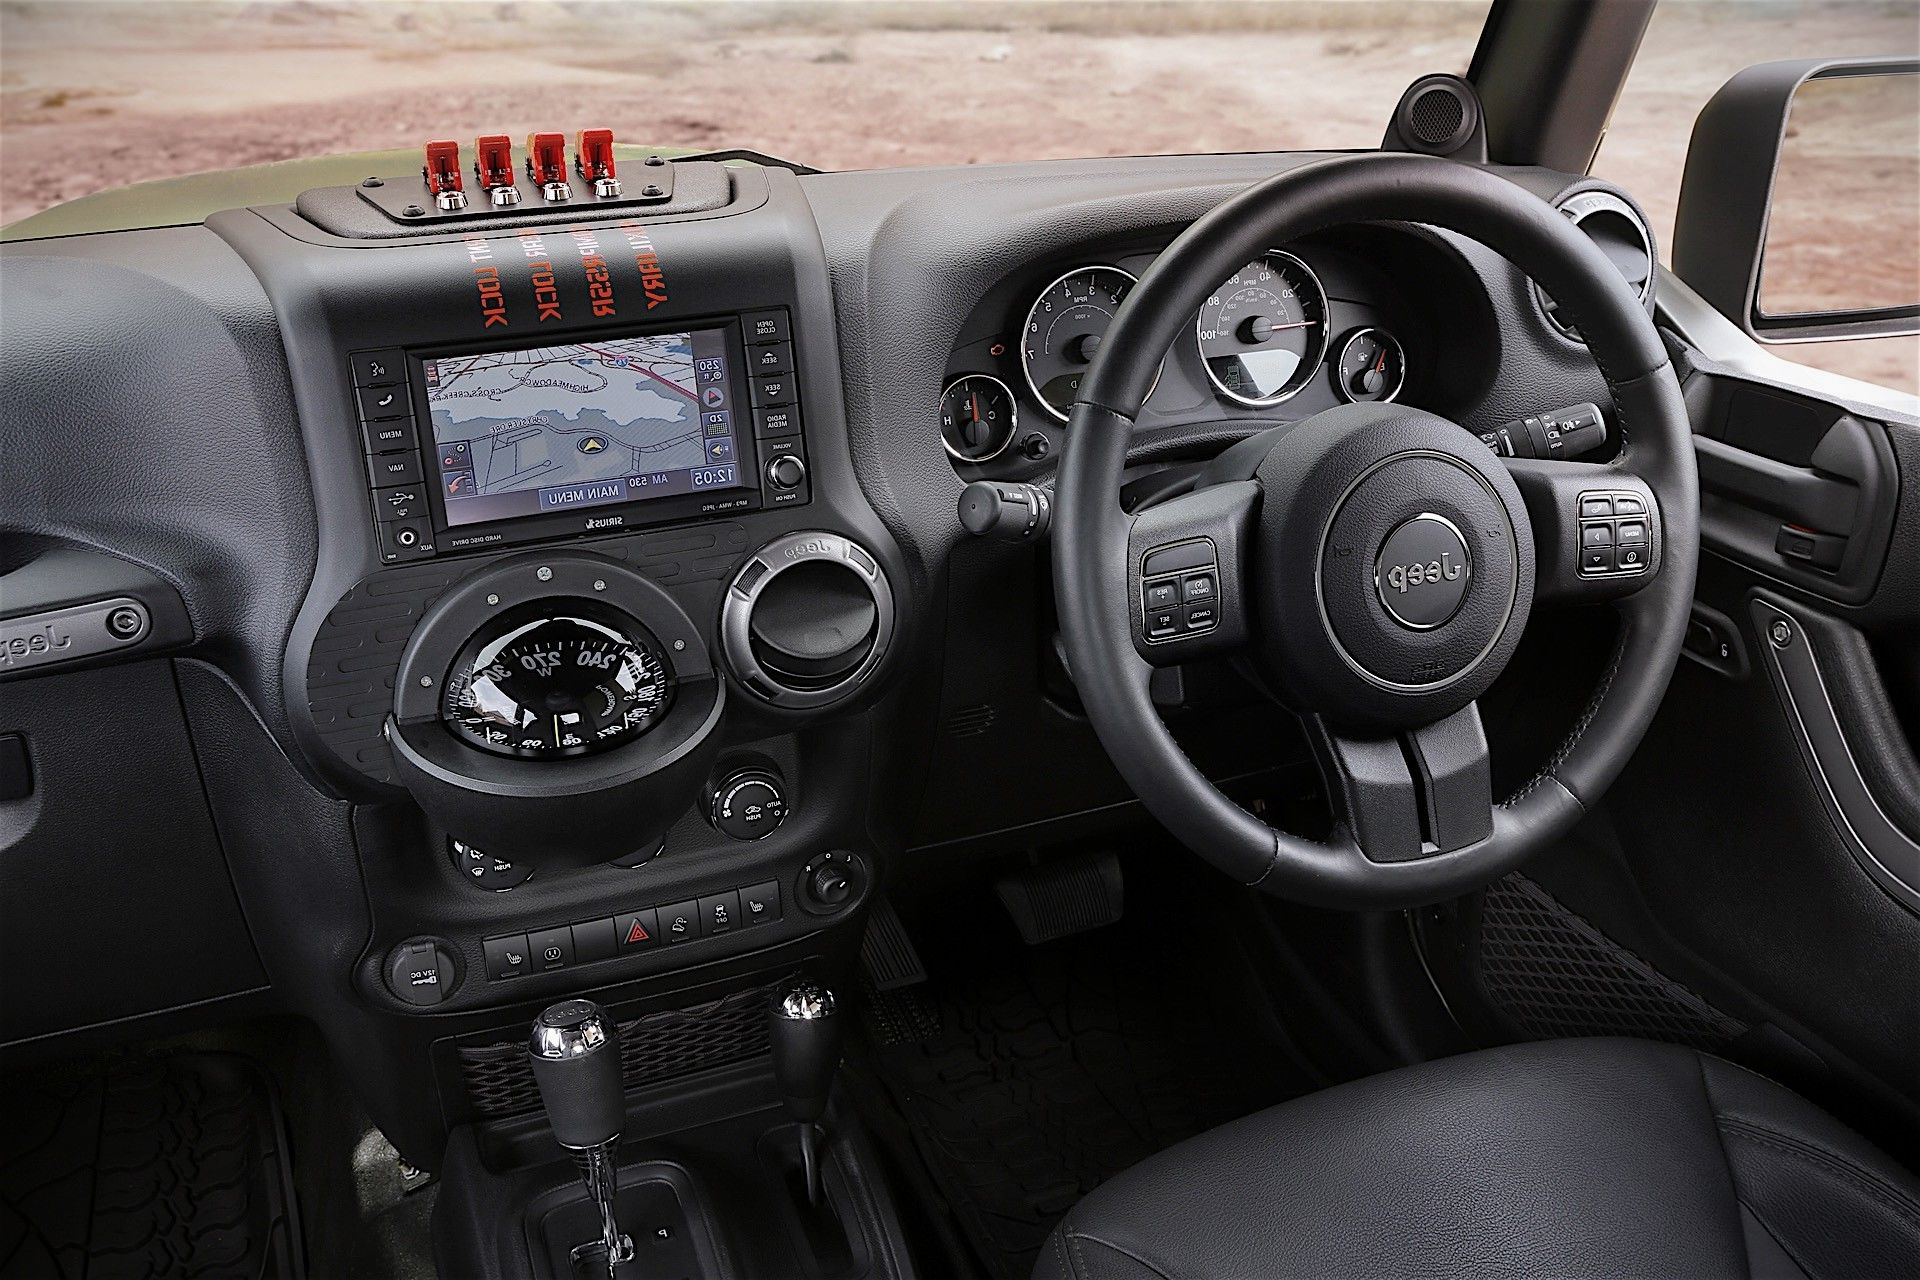 2019 Wrangler Pickup Truck interior design